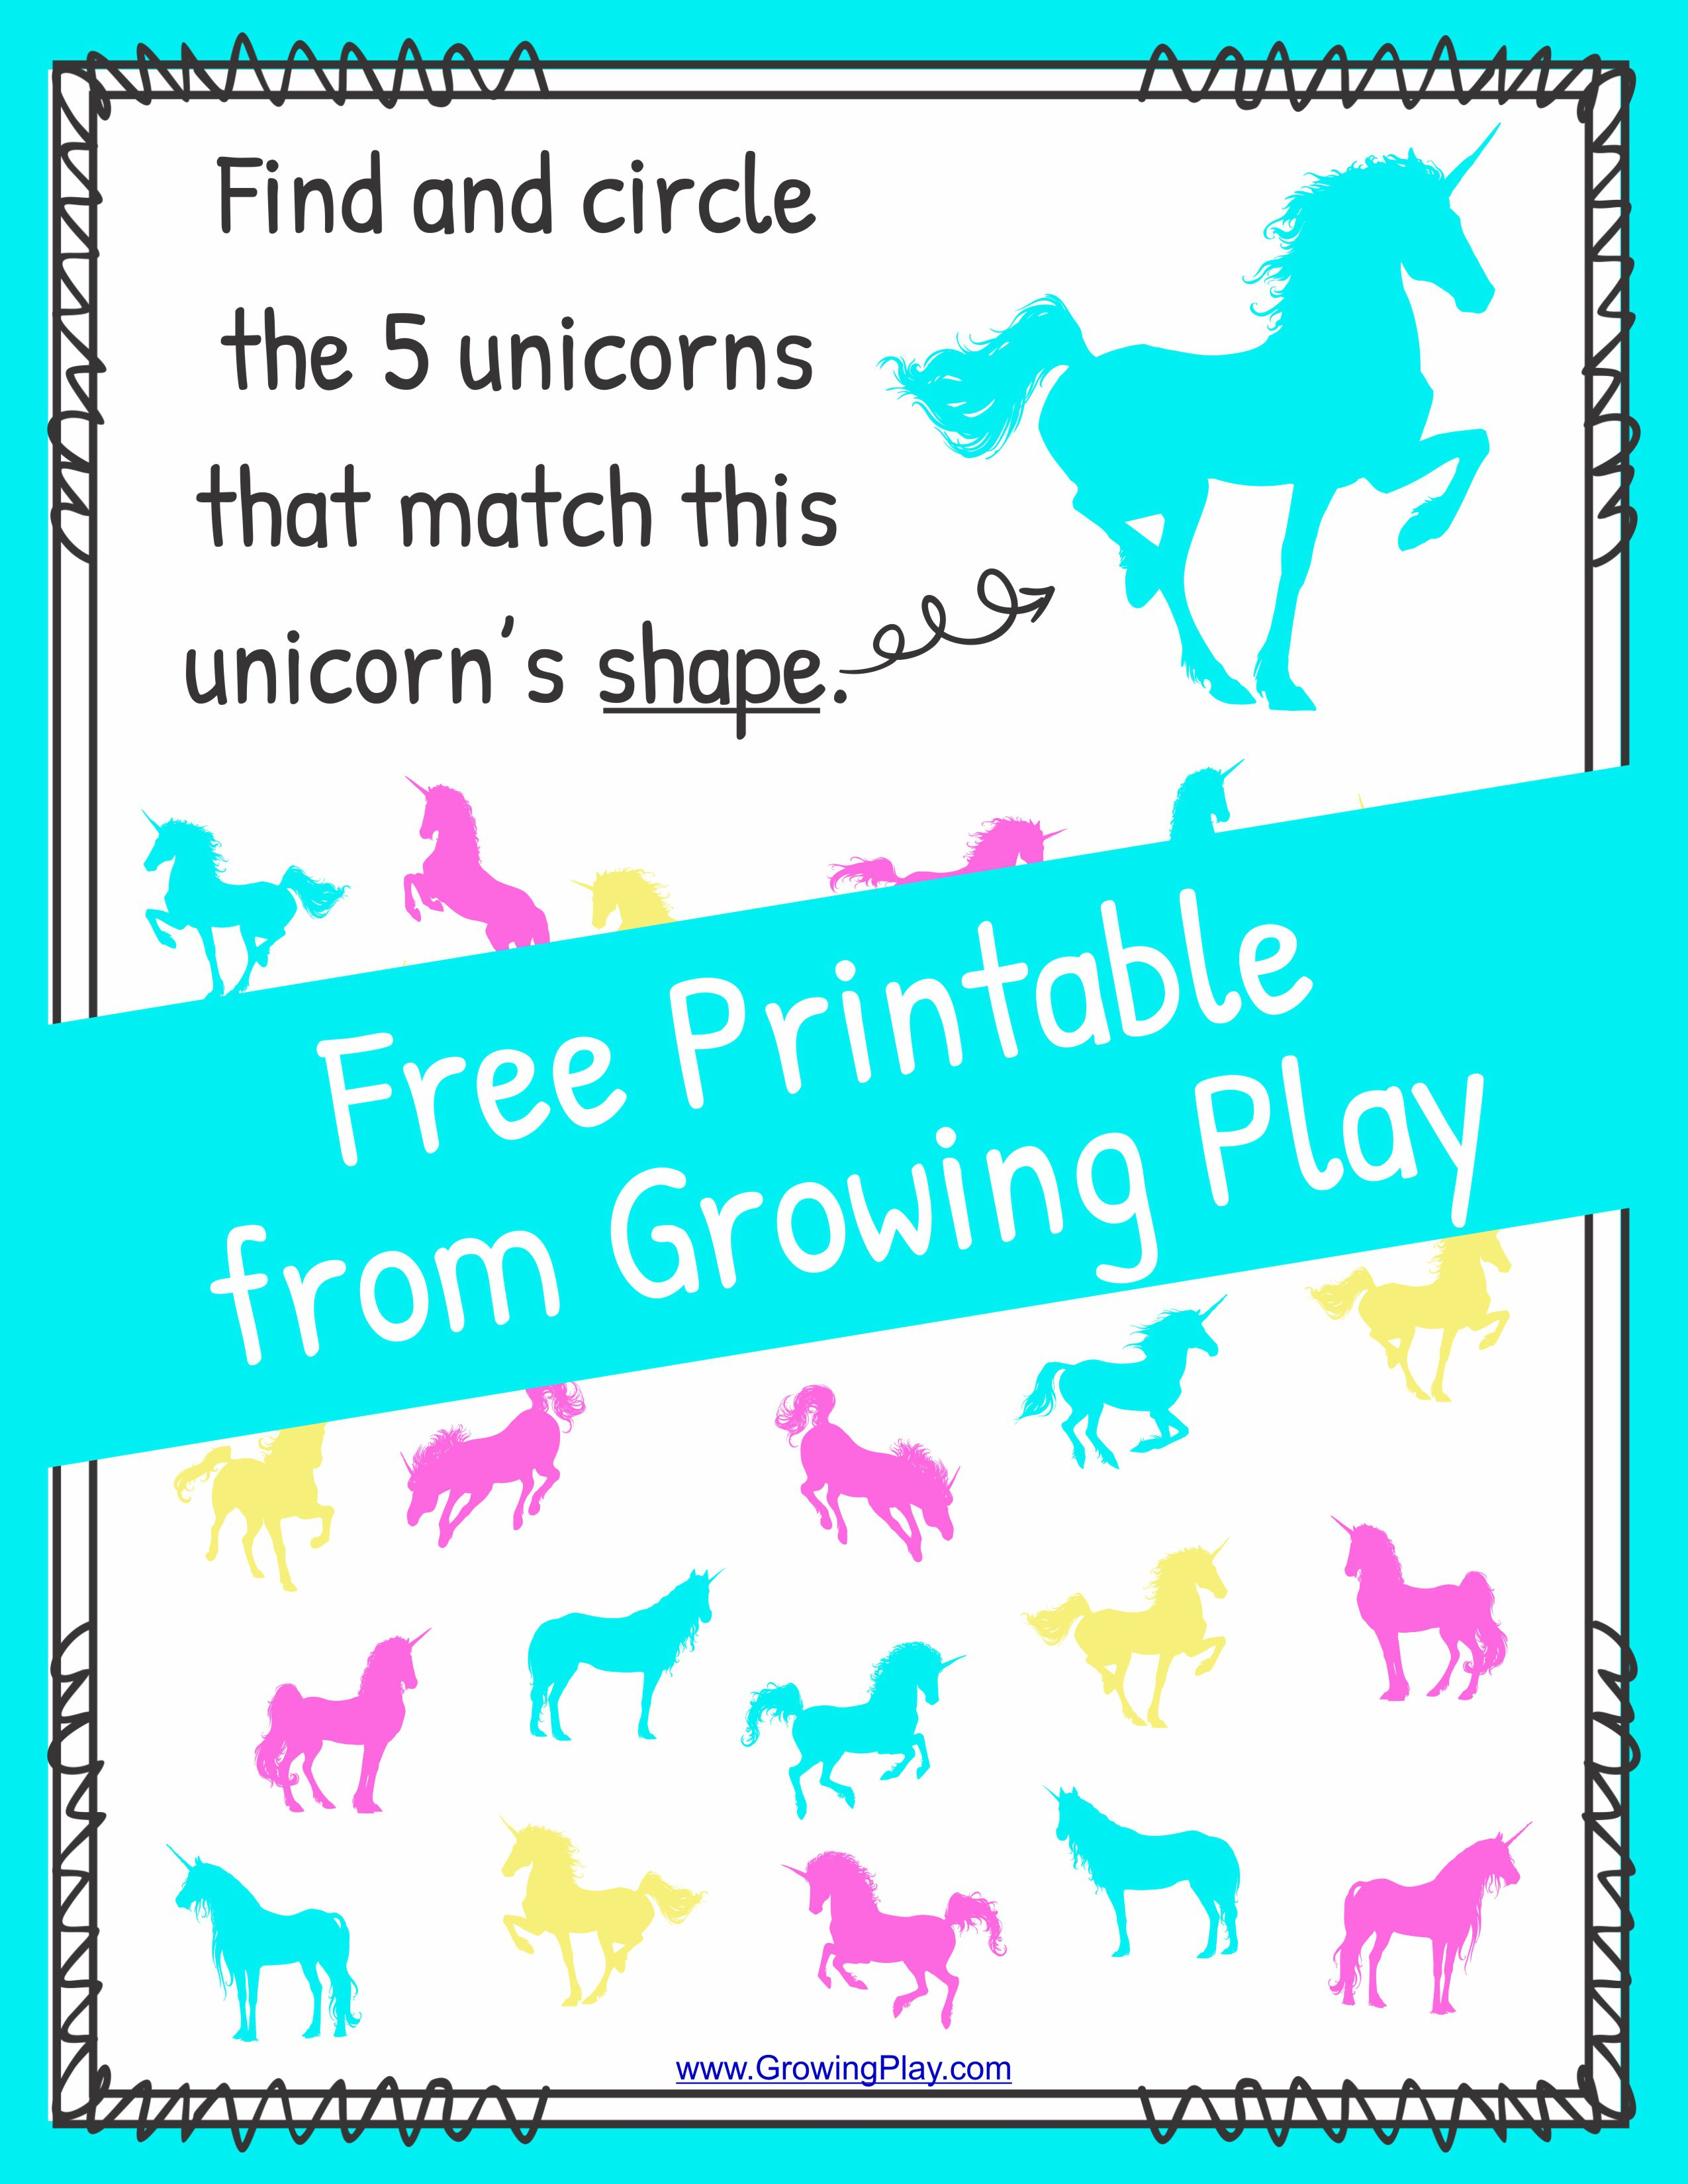 unicorns Archives - Growing Play